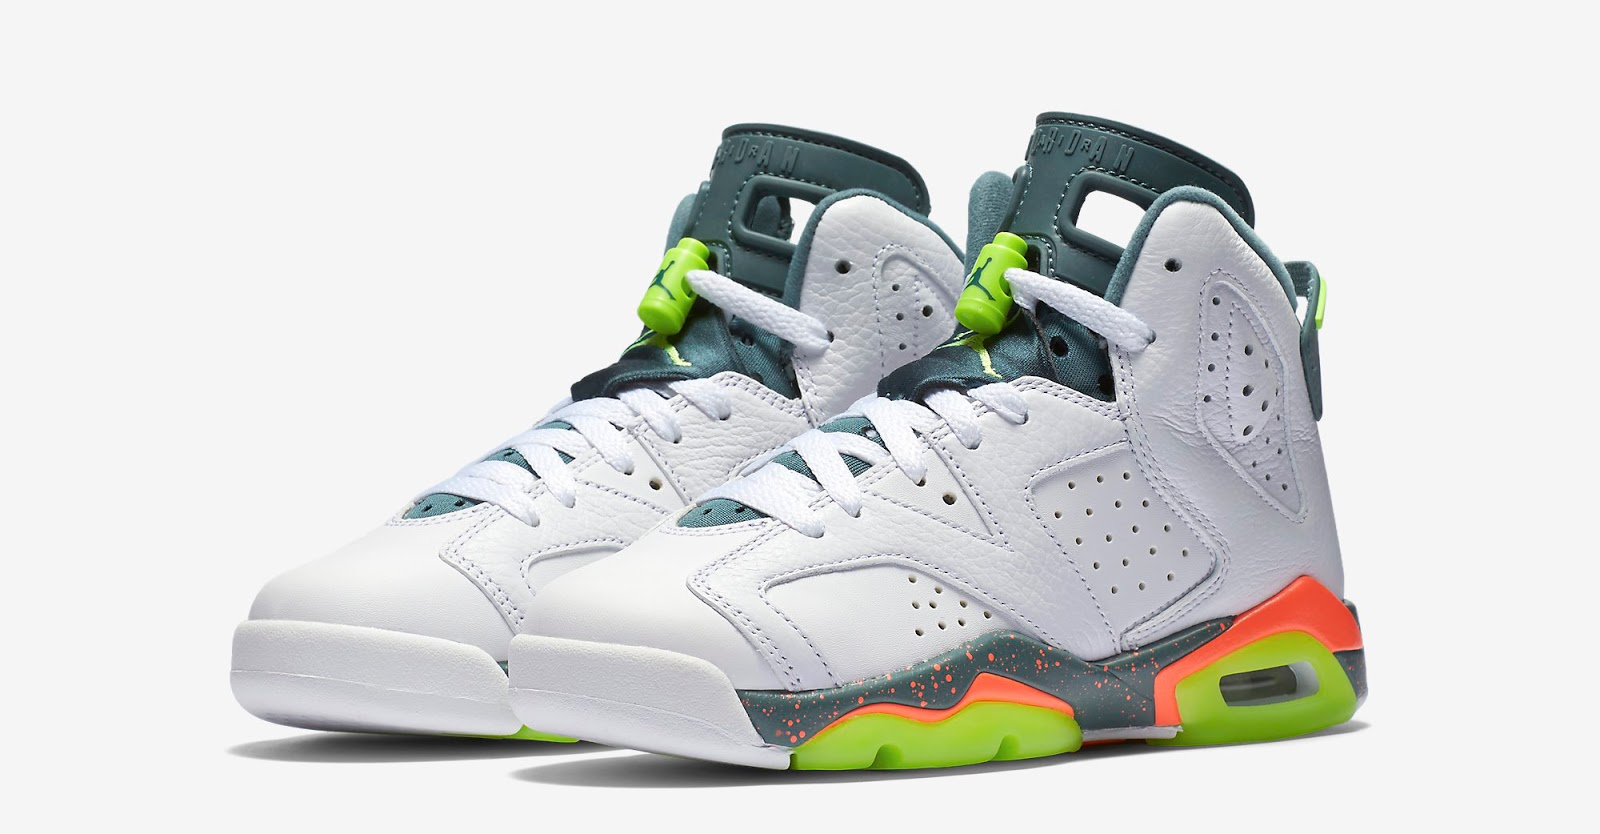 784ca247bea ajordanxi Your  1 Source For Sneaker Release Dates  Air Jordan 6 Retro GS  White Ghost Green-Bright Mango-Hasta Release Reminder